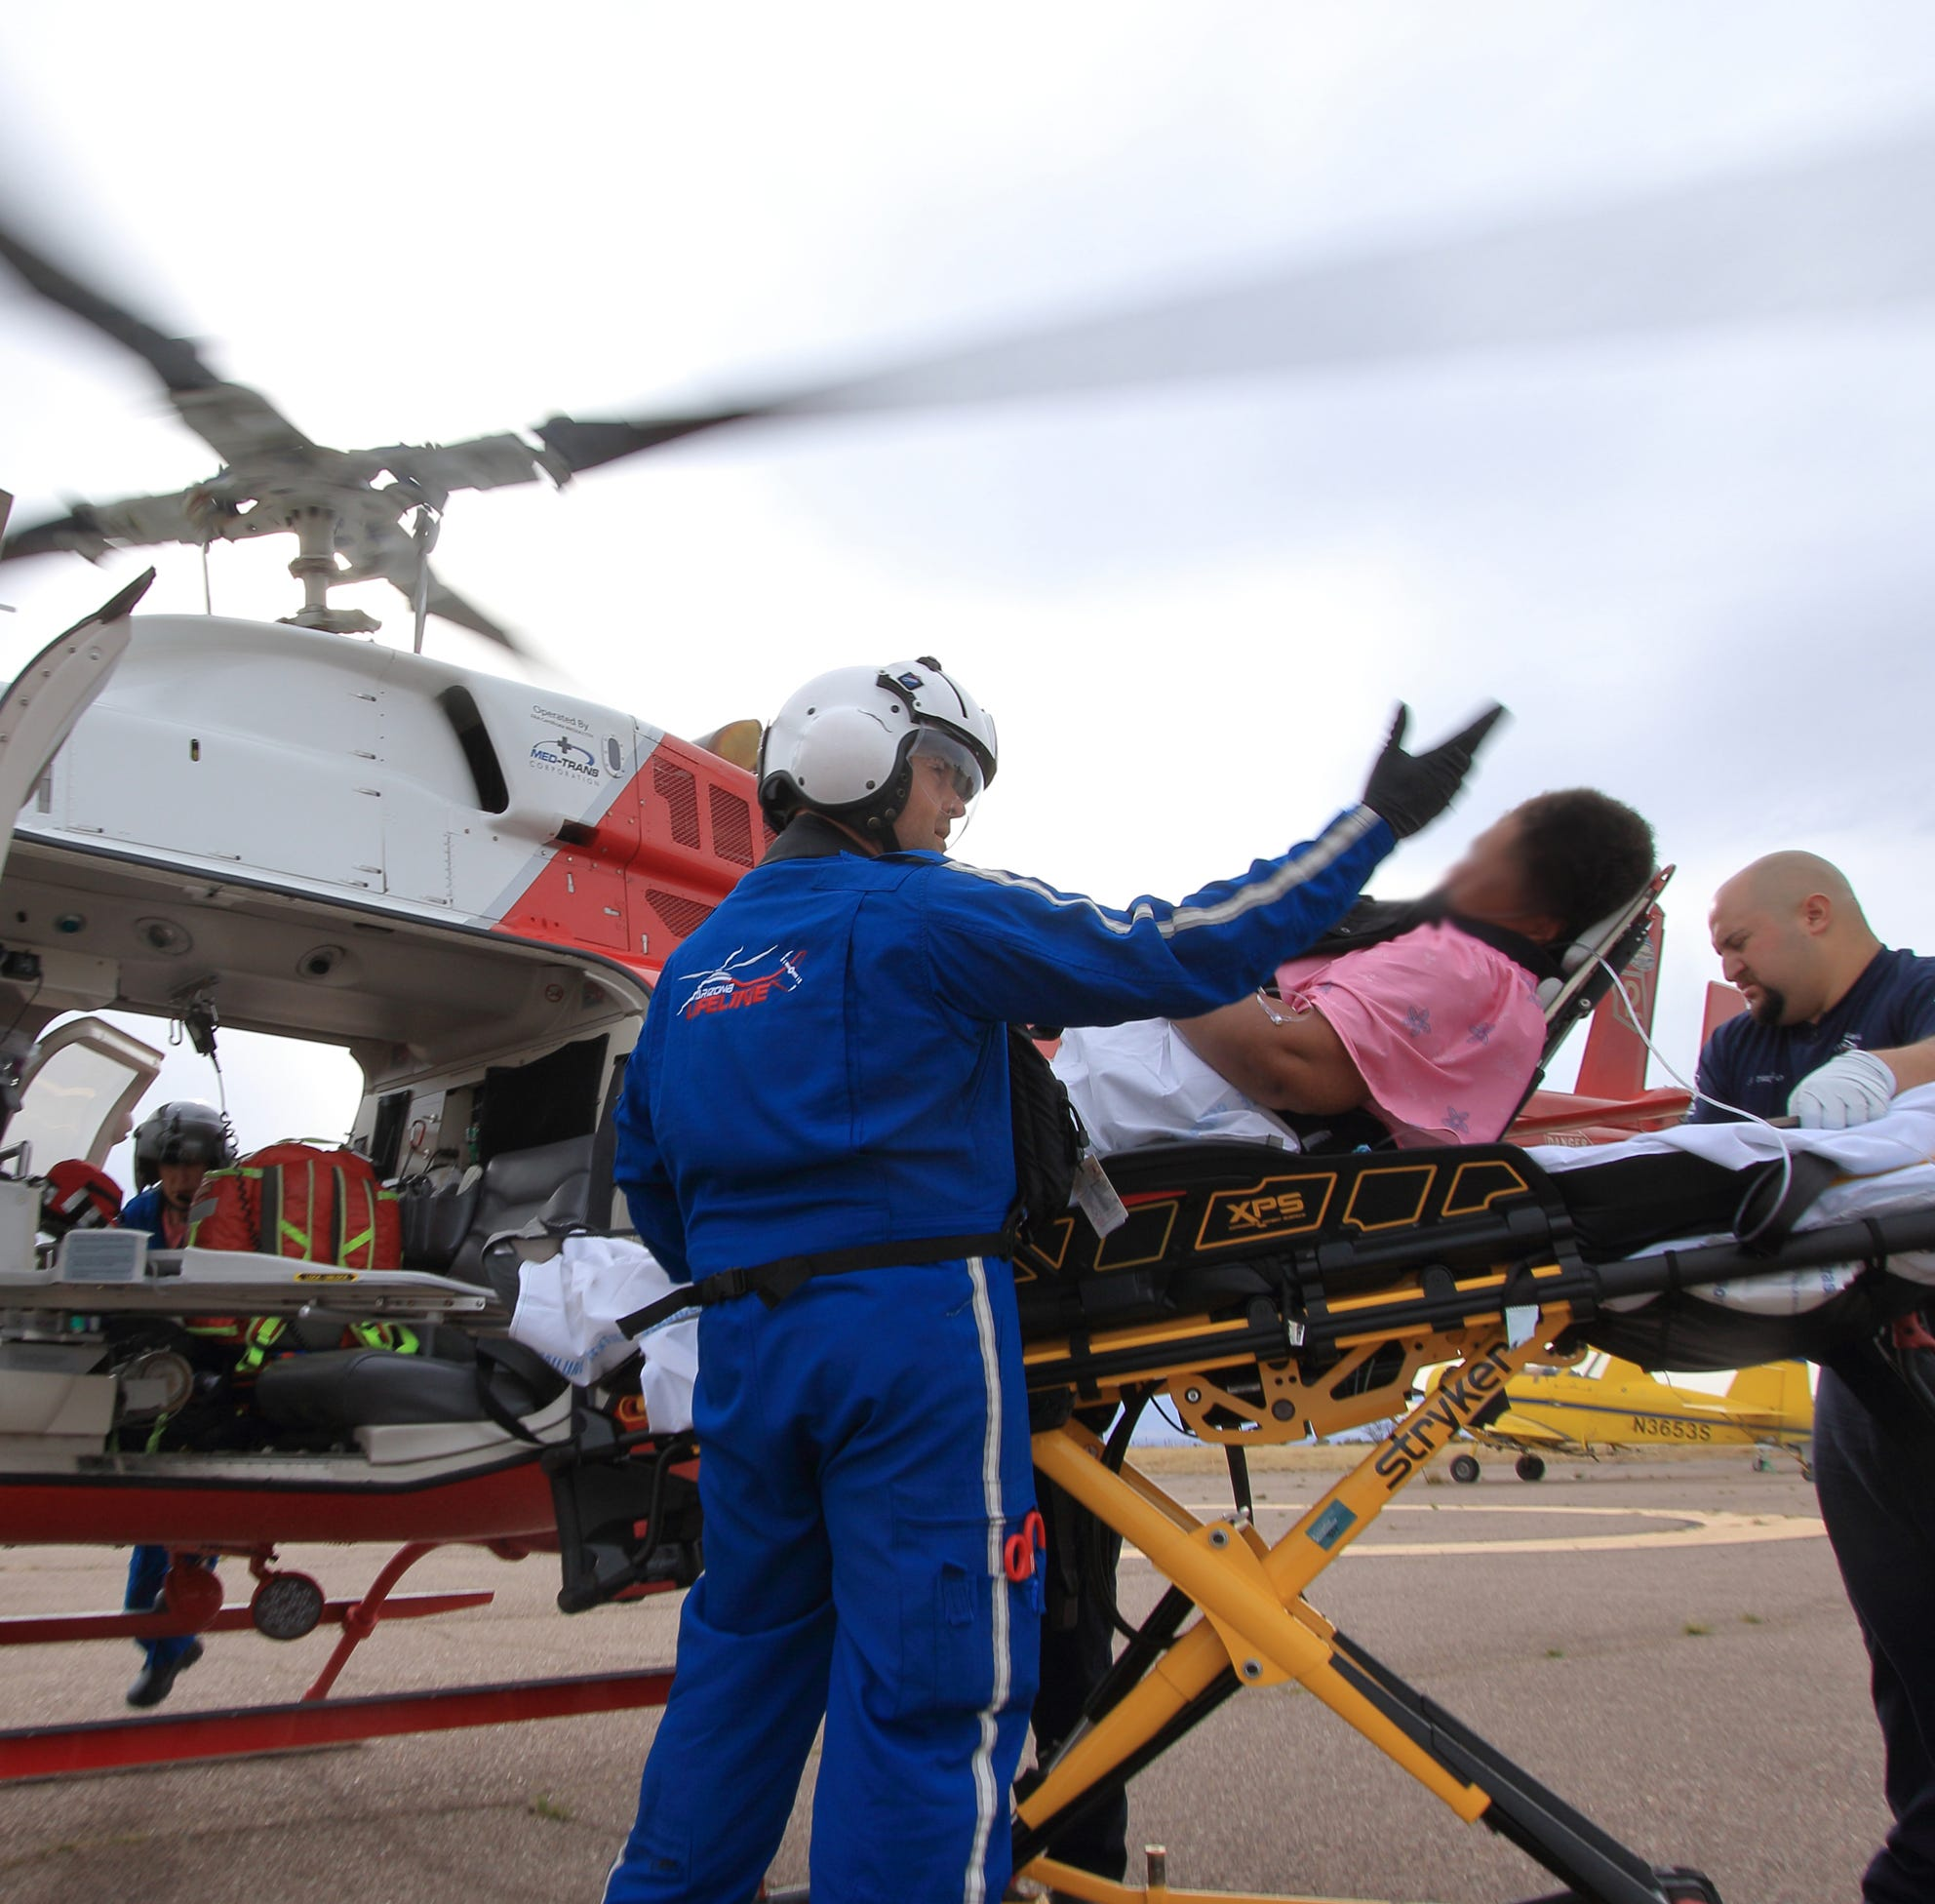 Don't limit access to air medical support